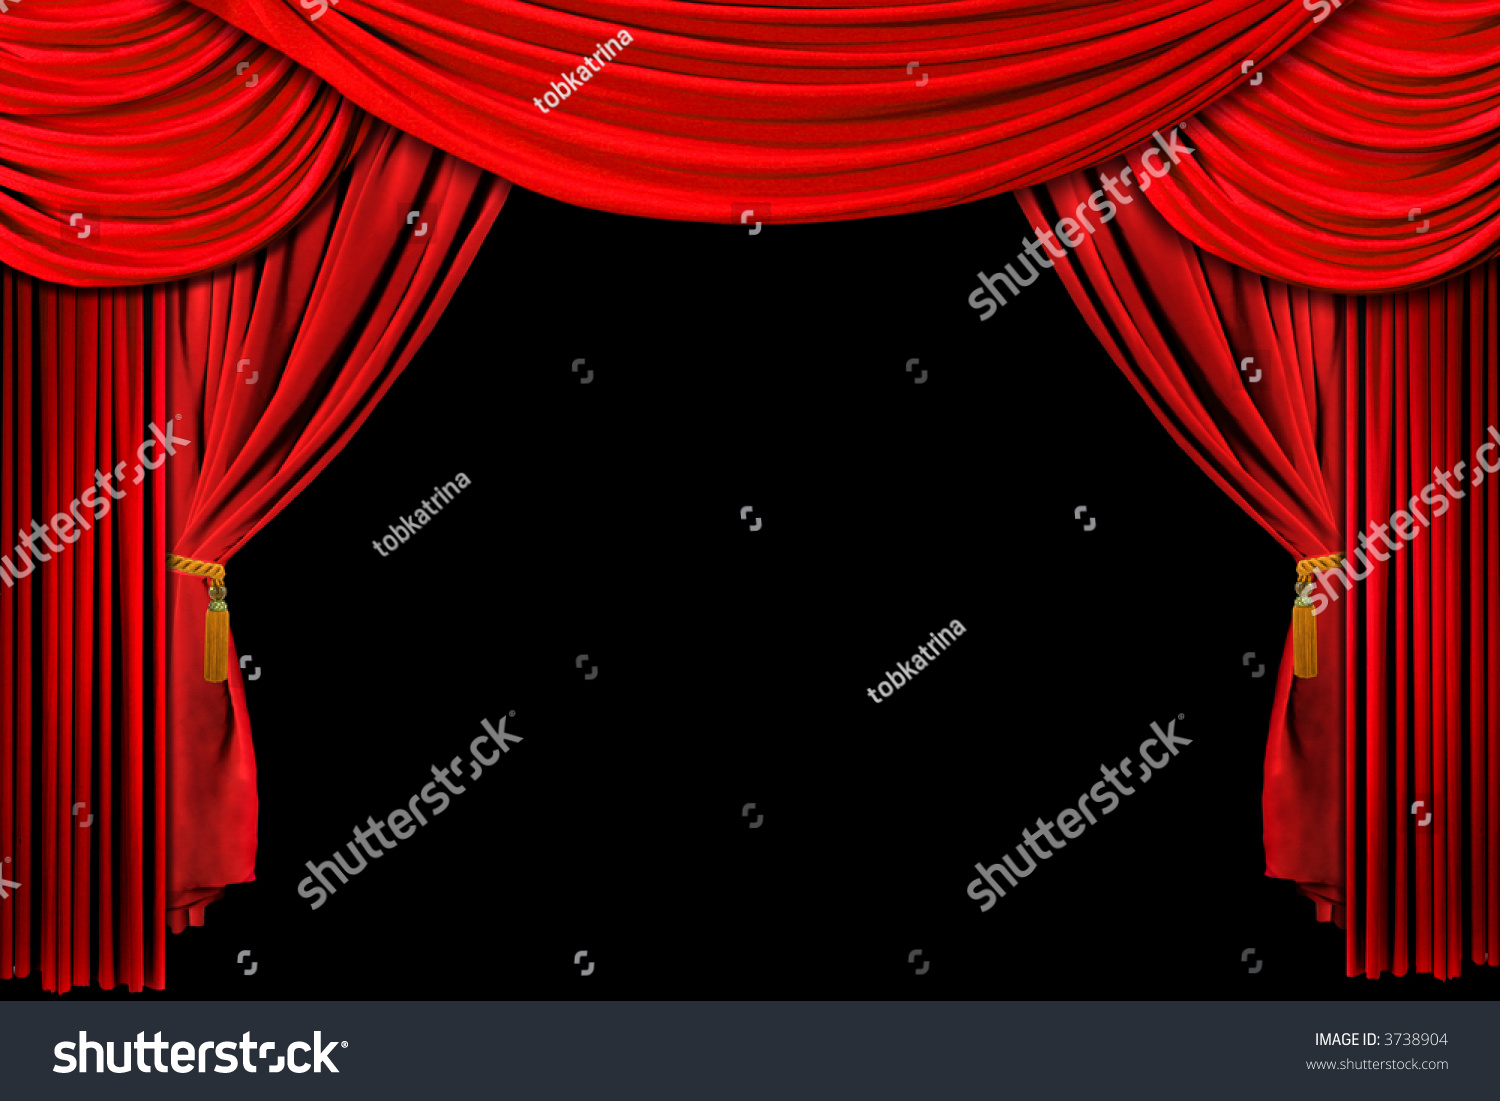 Black theatre curtain - Bright Red Stage Theater Draped Curtain Background On Black